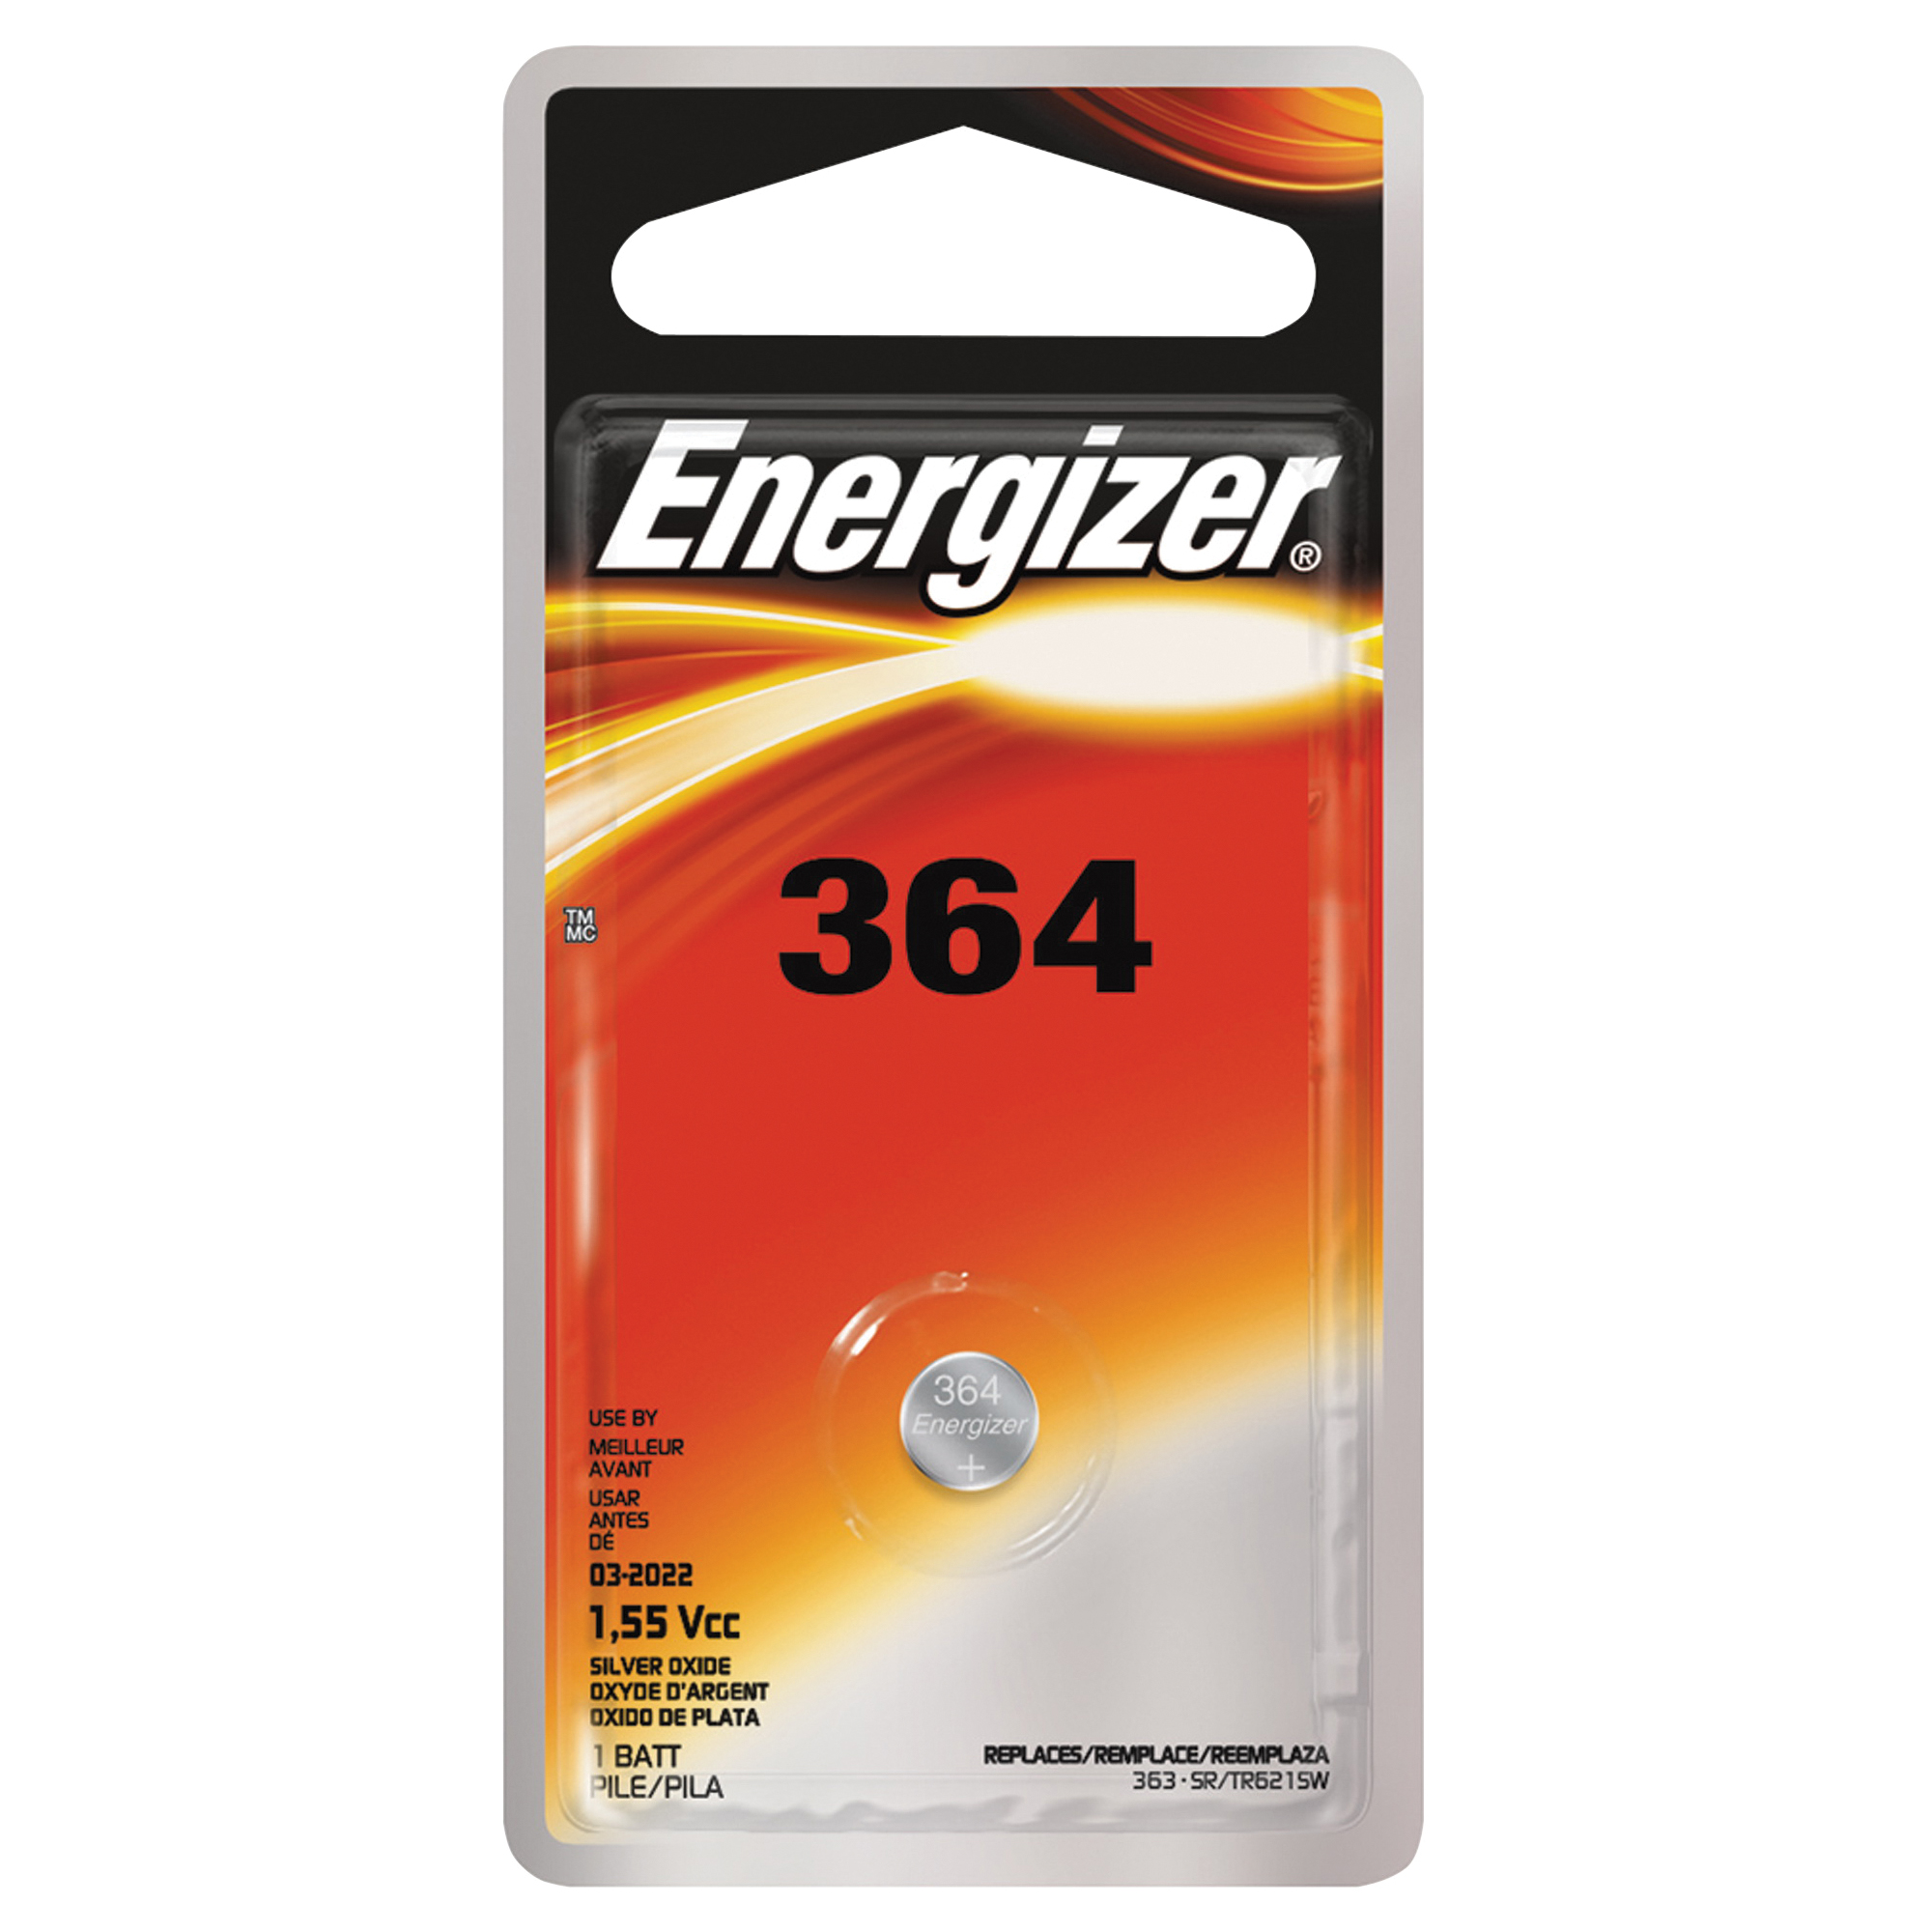 Picture of Energizer 364BPZ Button Cell Battery, 1.5 V Battery, 18 mAh, 364 Battery, Silver Oxide